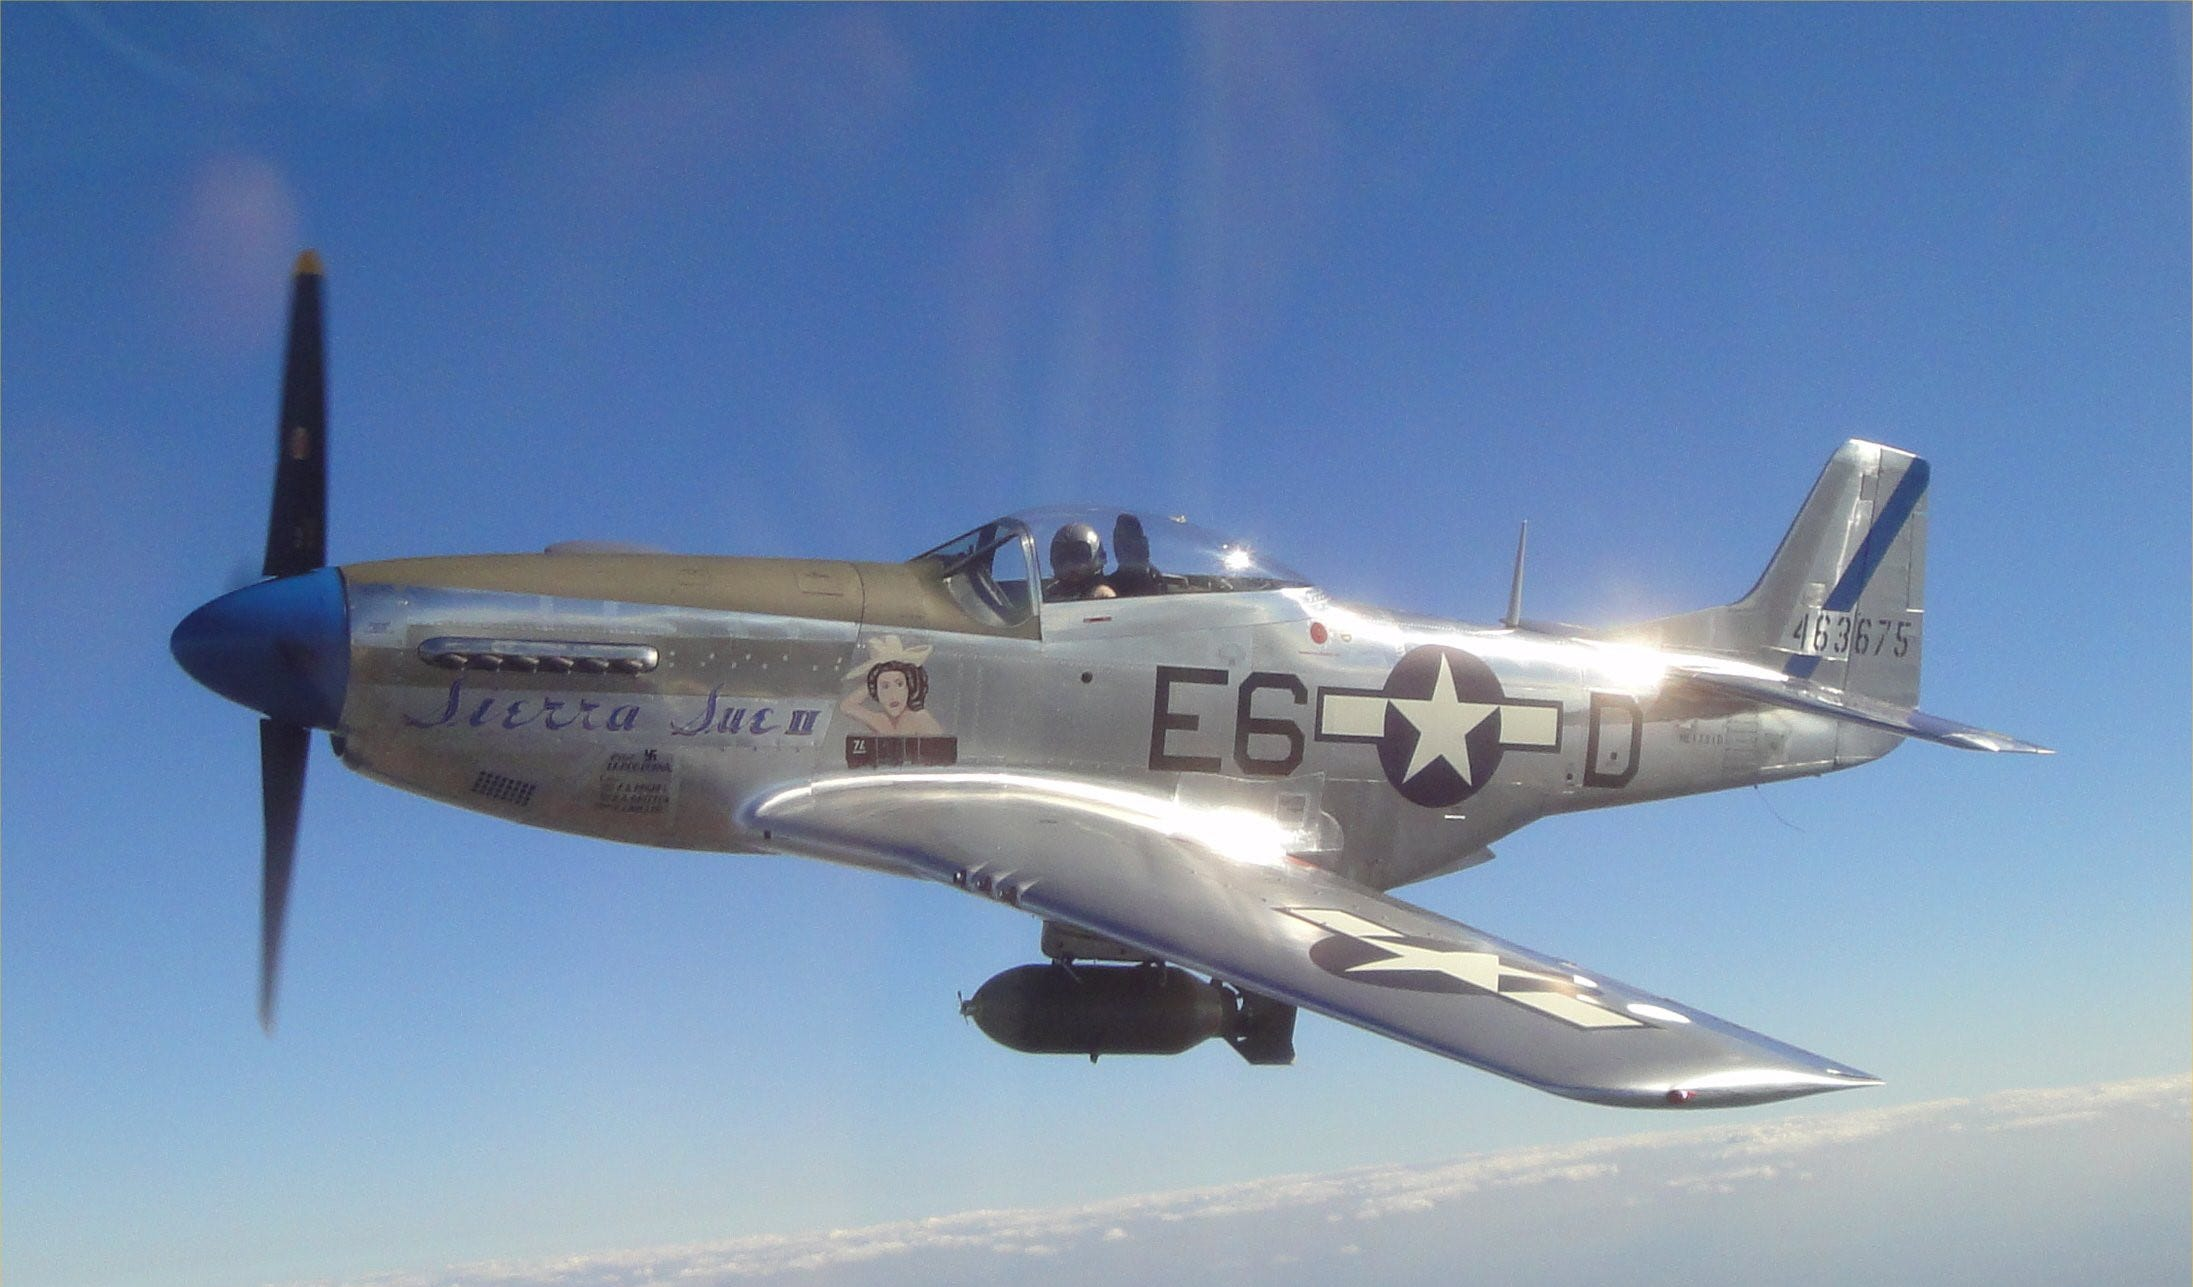 The World War II plane was restored with rivets from National Rivet & Manufacturing Co. earlier this decade.